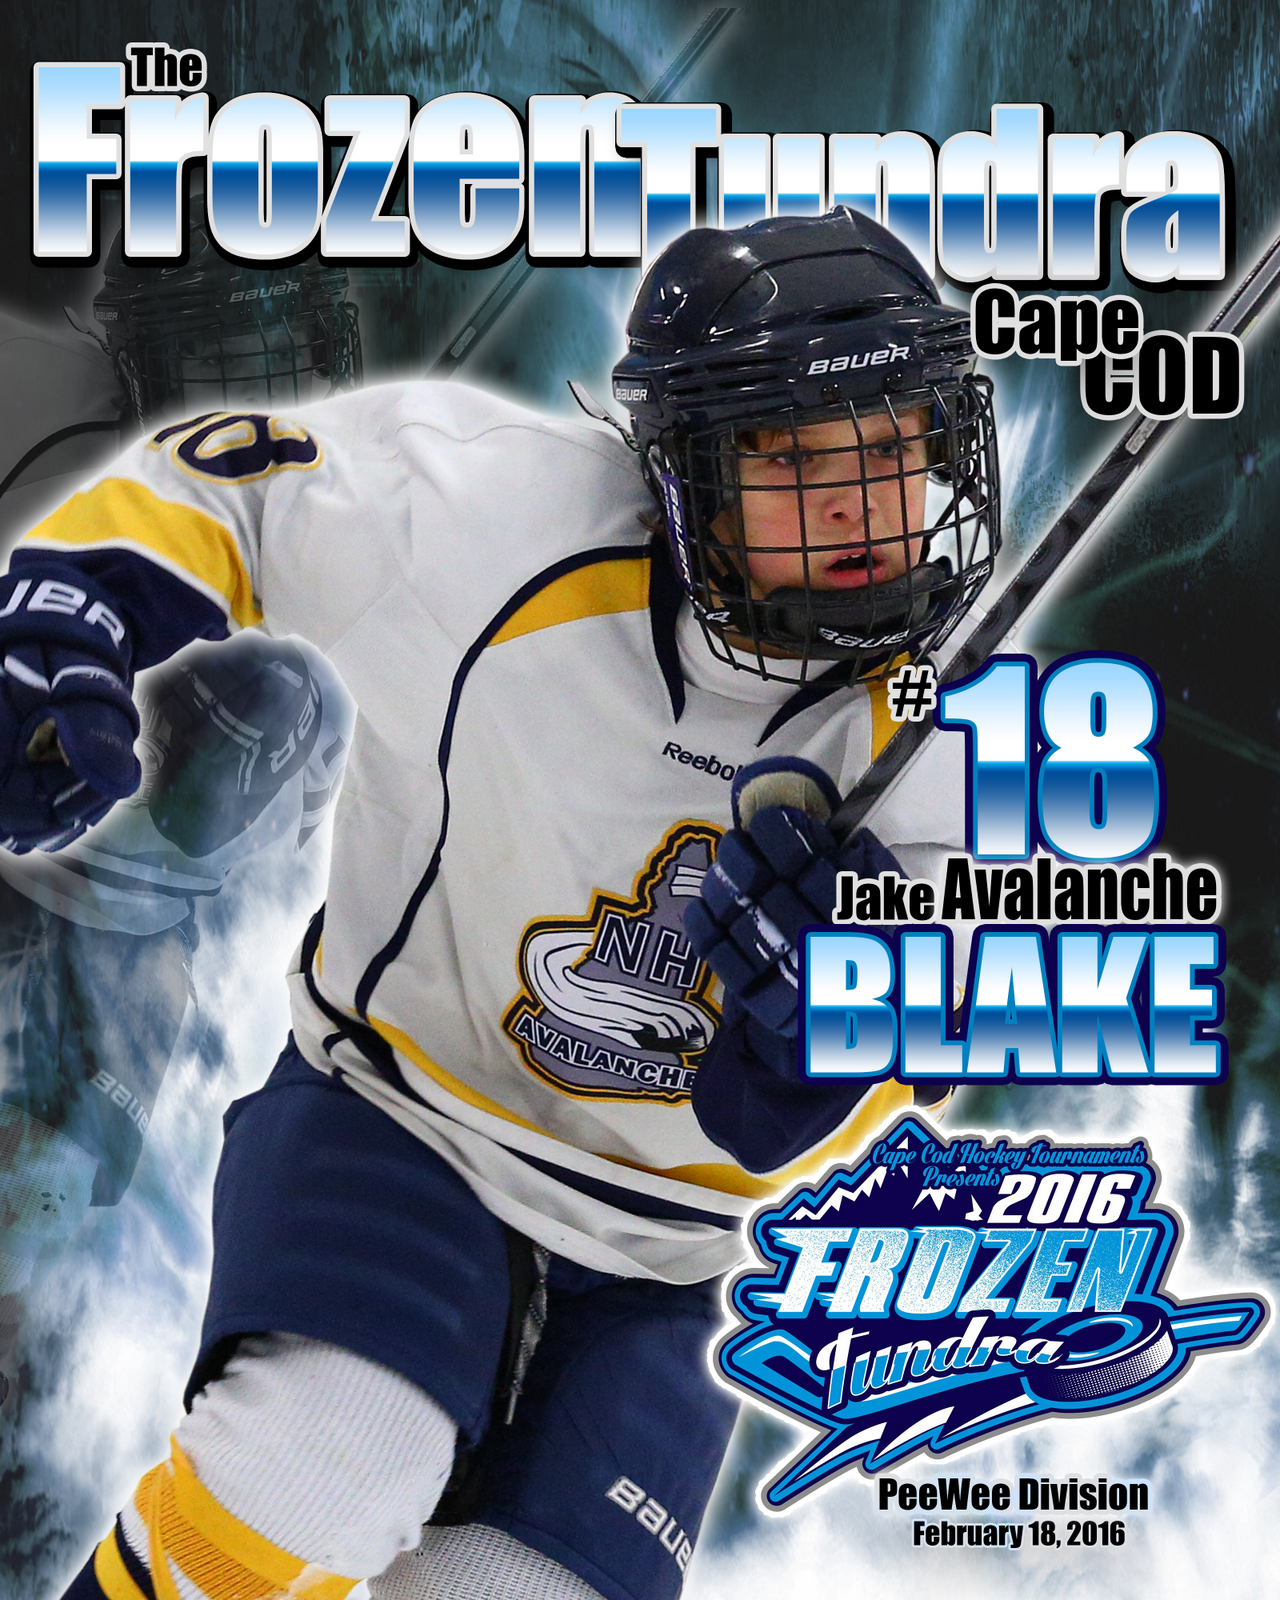 SilverPeak Studios Commemorative Poster Samples Action Sports Hockey Photography (1)